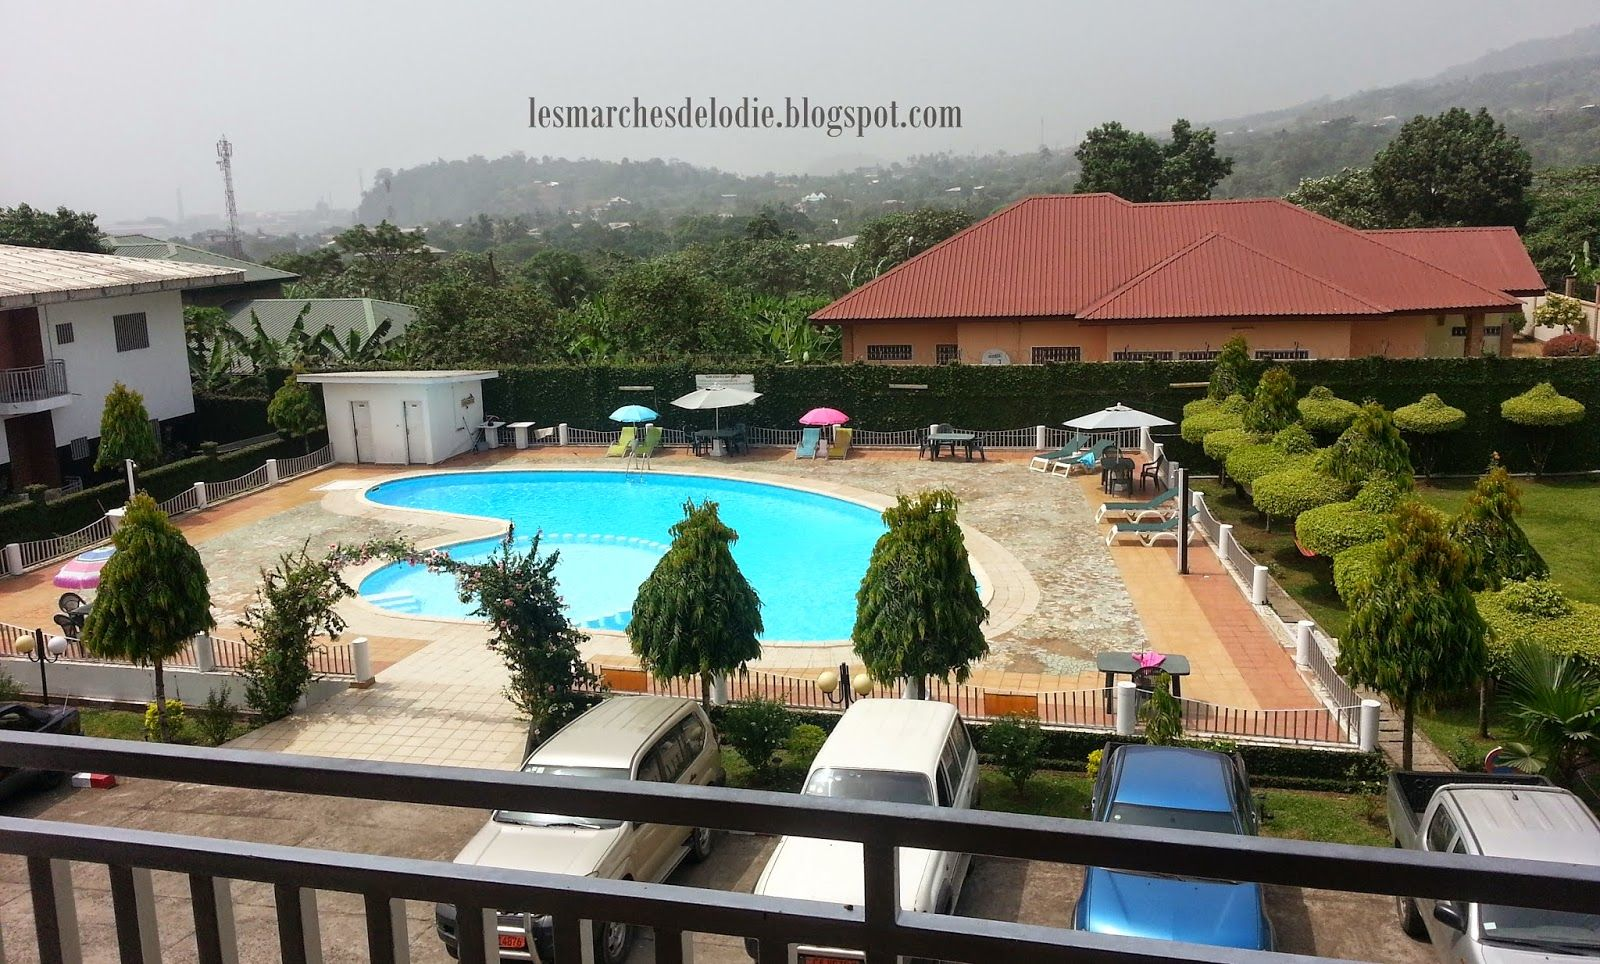 Hotel Golden City Lhotel Golden City A Limbe Les Marches Delodie Blog